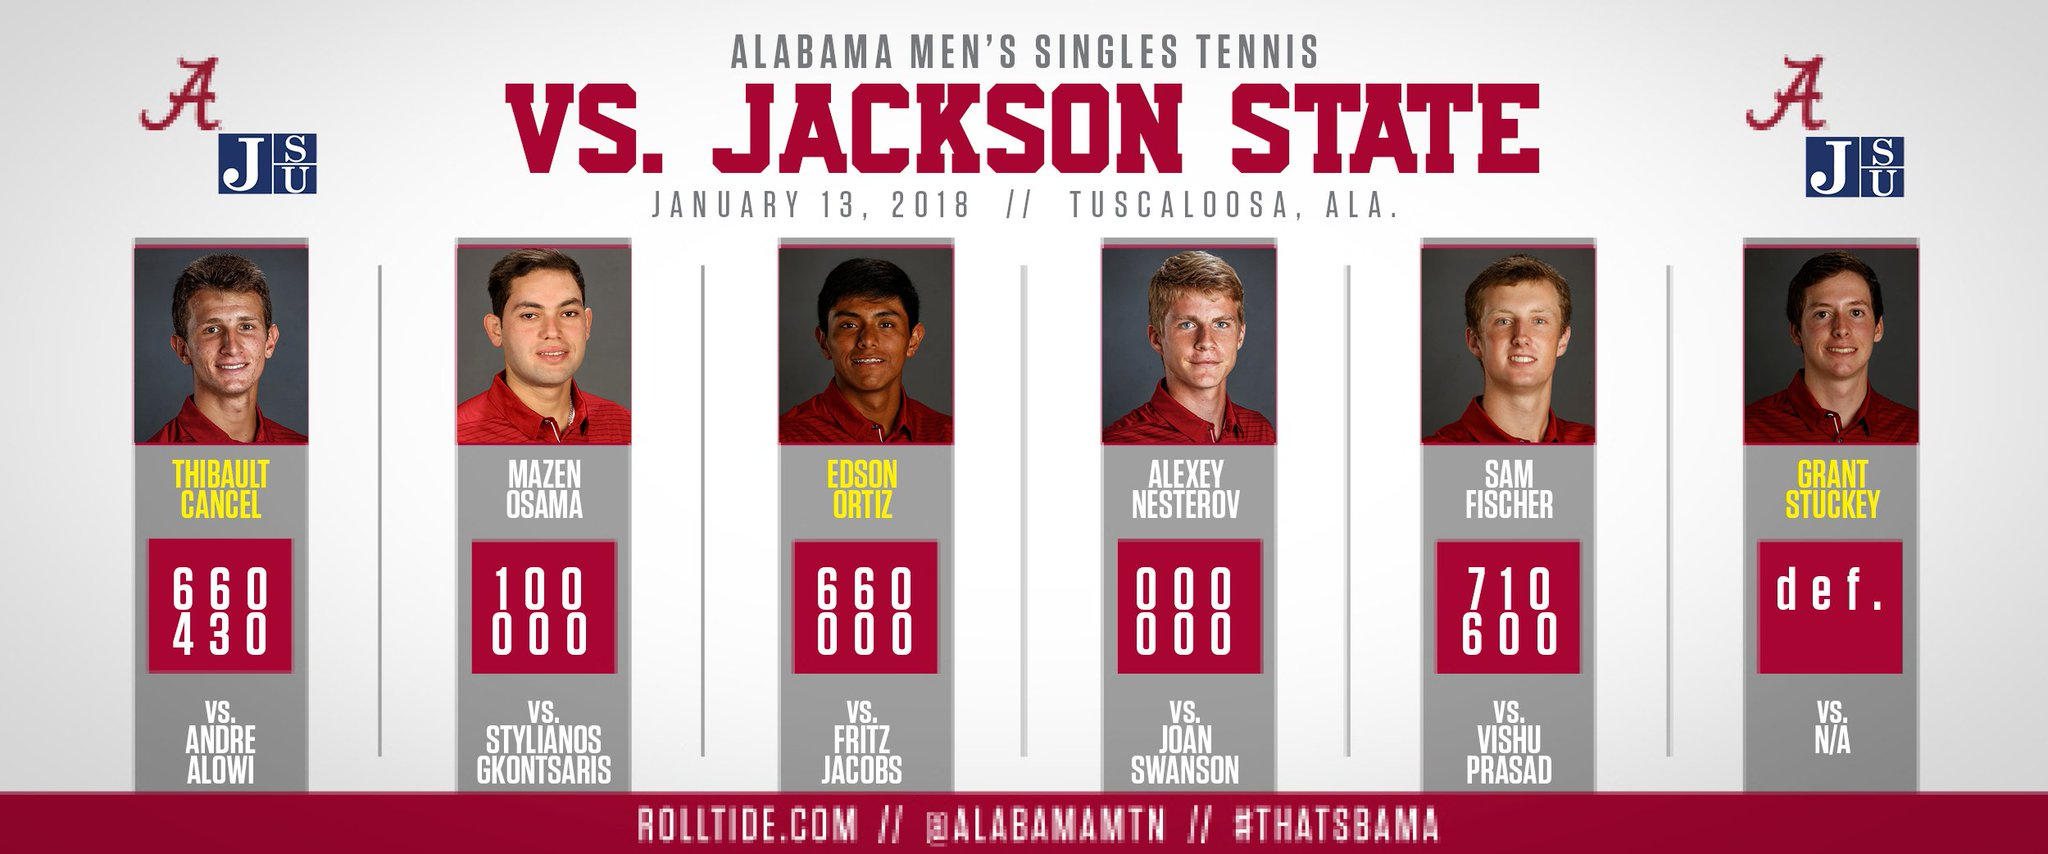 �� ALABAMA WINS�� The Tide wins 4-0 over Jackson State to start off the 2018 dual match season‼️  #RollTide #ThatsBama https://t.co/2SZyIRVbsf